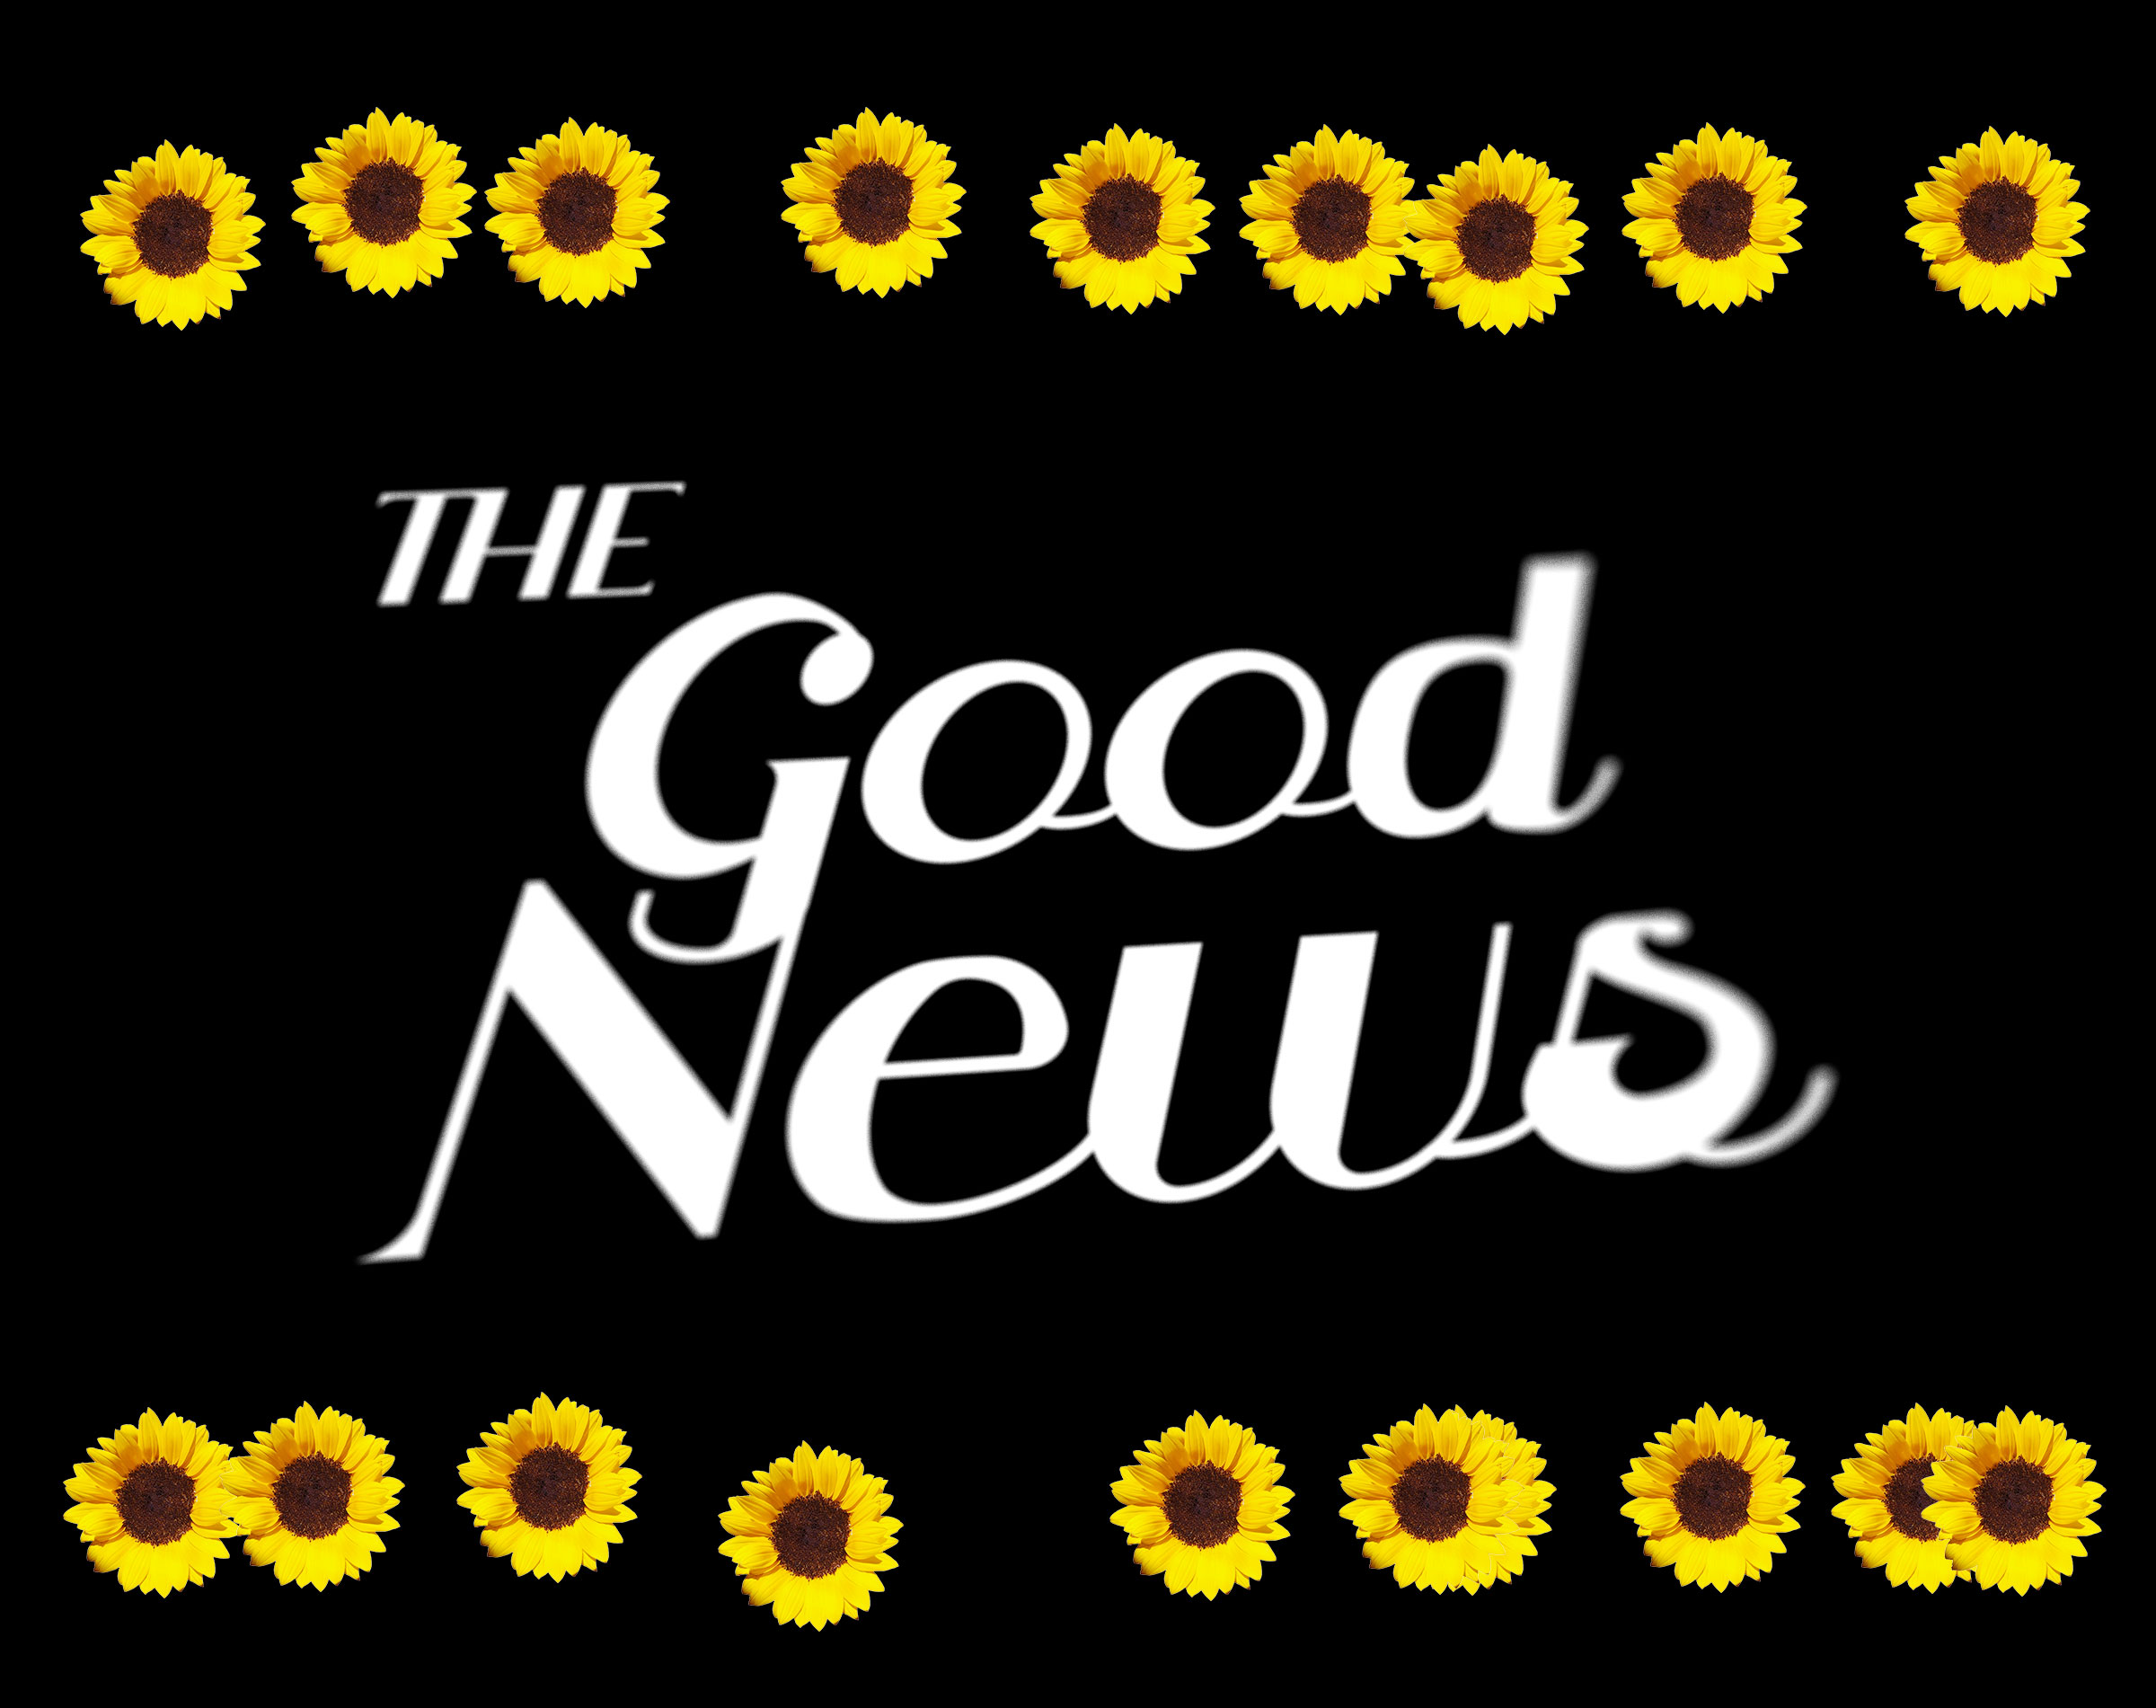 The Good News Segment